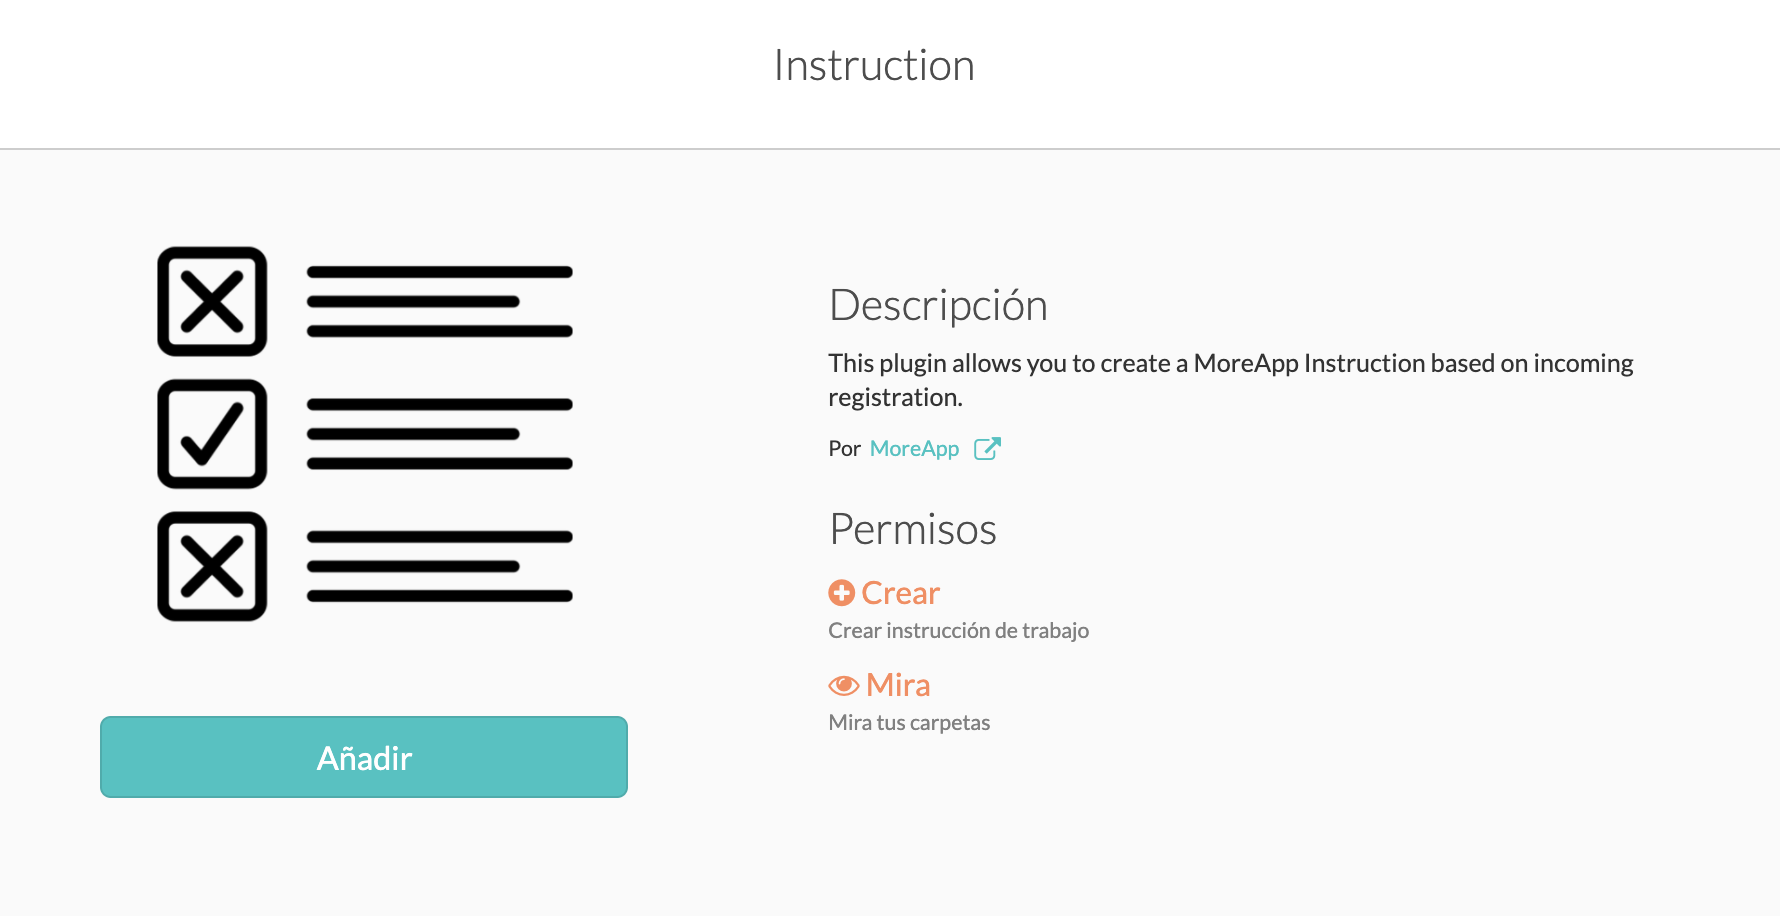 Integracion MoreApp Instruction